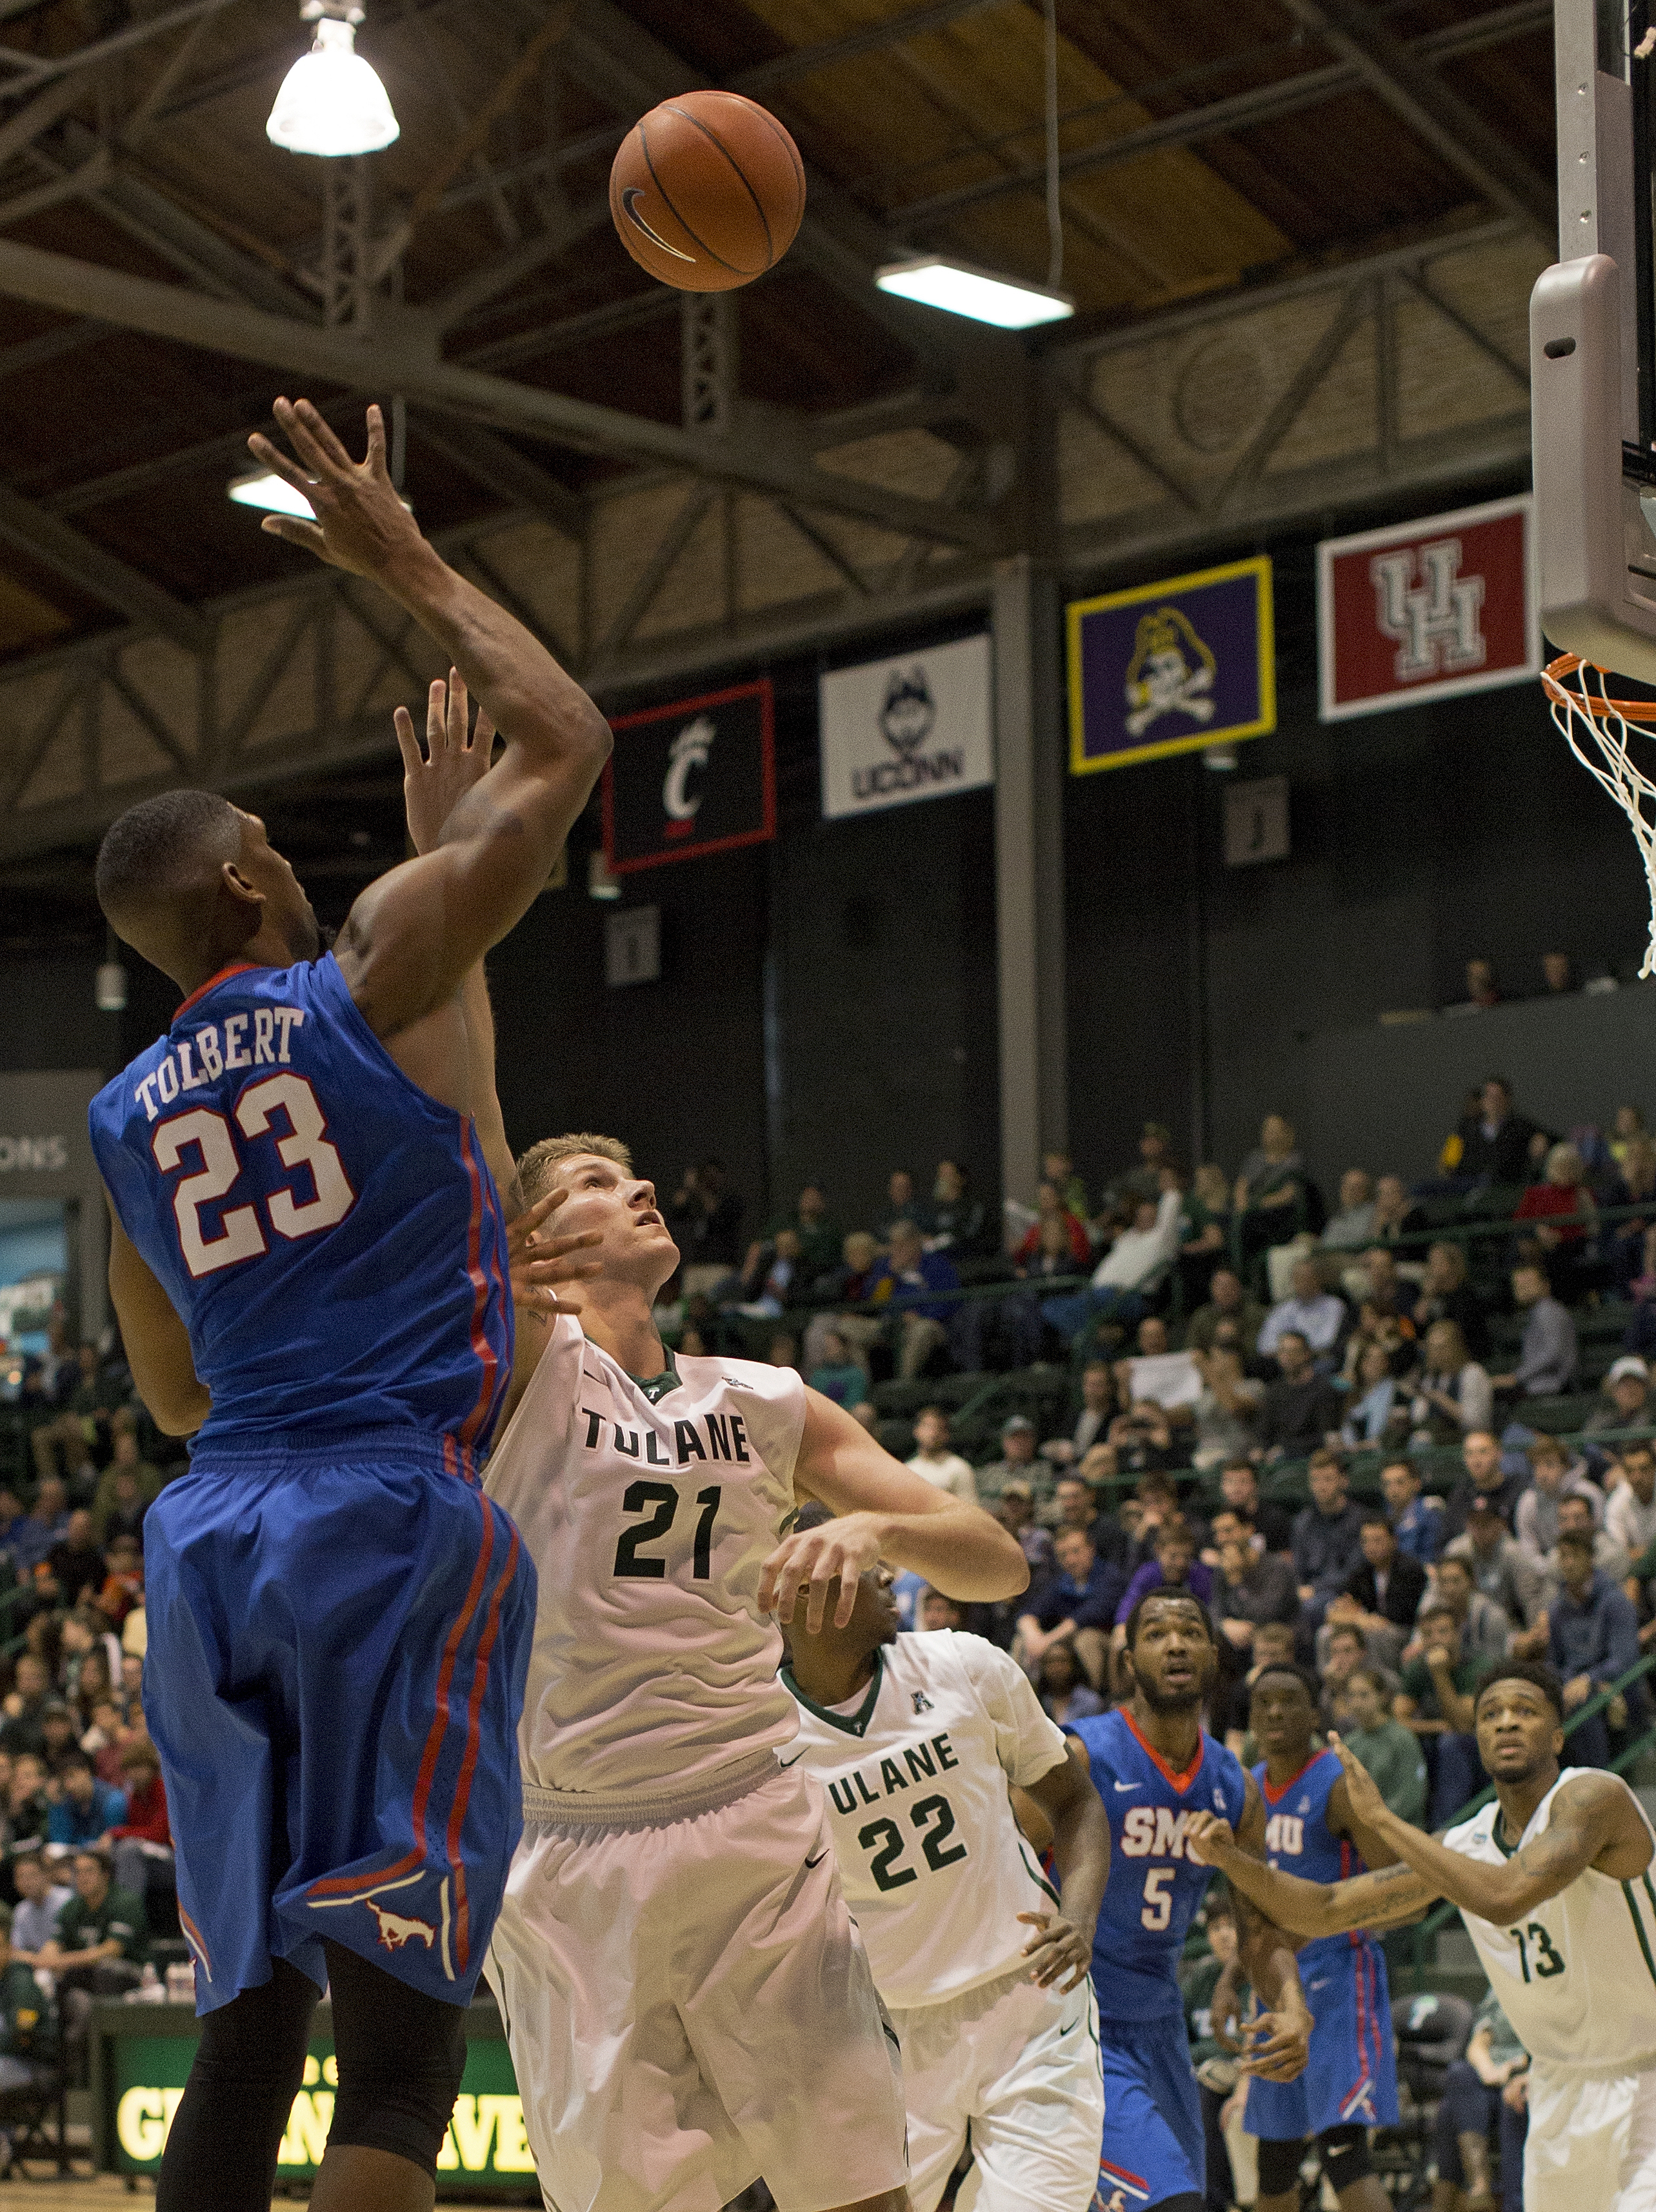 SMU forward Jordan Tolbert (23) makes a shot over Tulane forward Dylan Osetkowski (21) in the first half of an NCAA college basketball game in New Orleans, Sunday, Jan. 17, 2016. (AP Photo/Max Becherer)